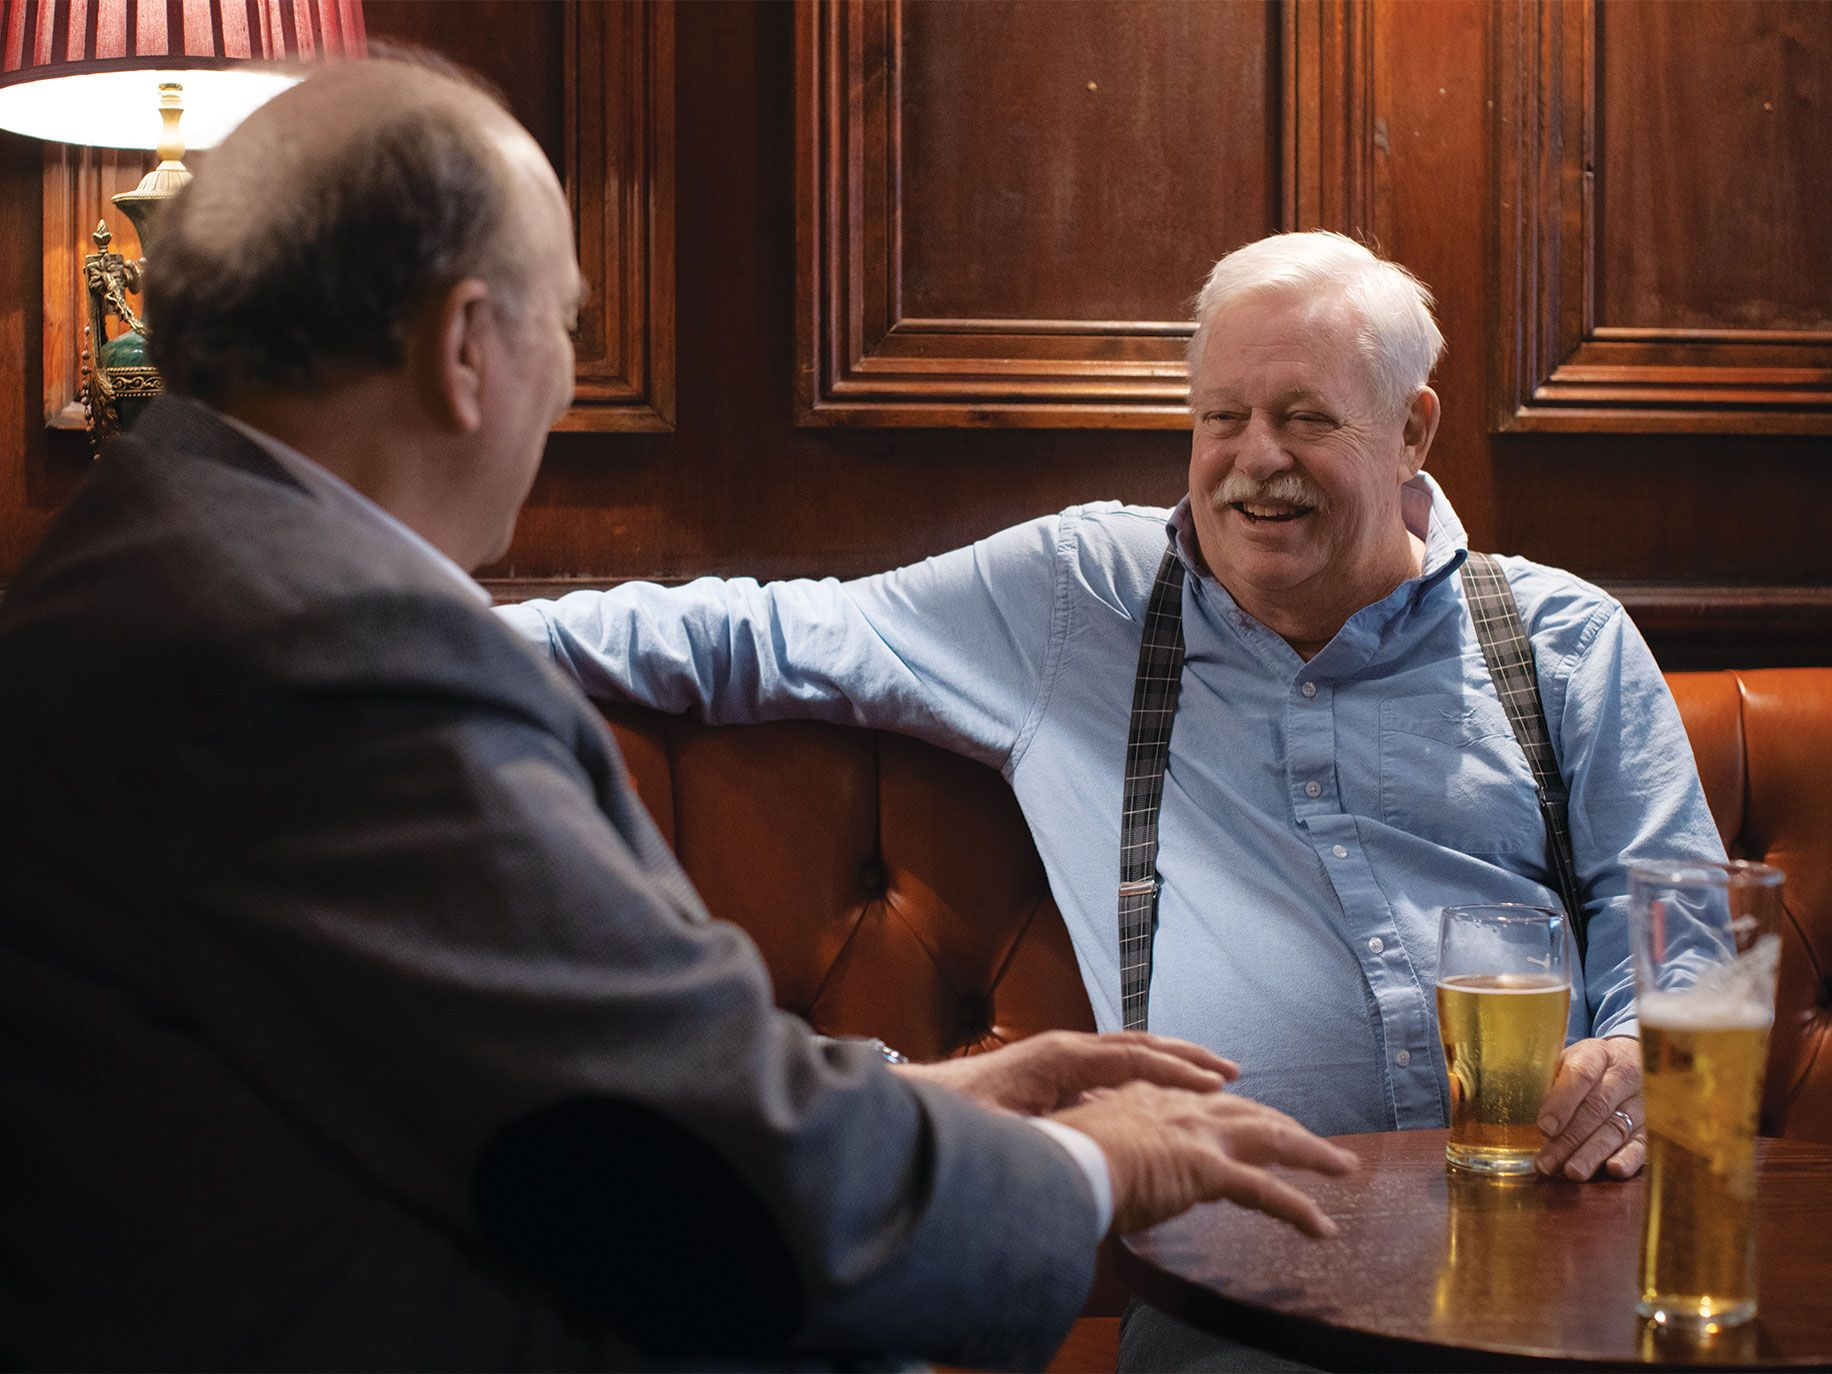 Alta editor and publisher Will Hearst (left) and writer Armistead Maupin enjoy pints of ale at Comptons of Soho, a London pub.